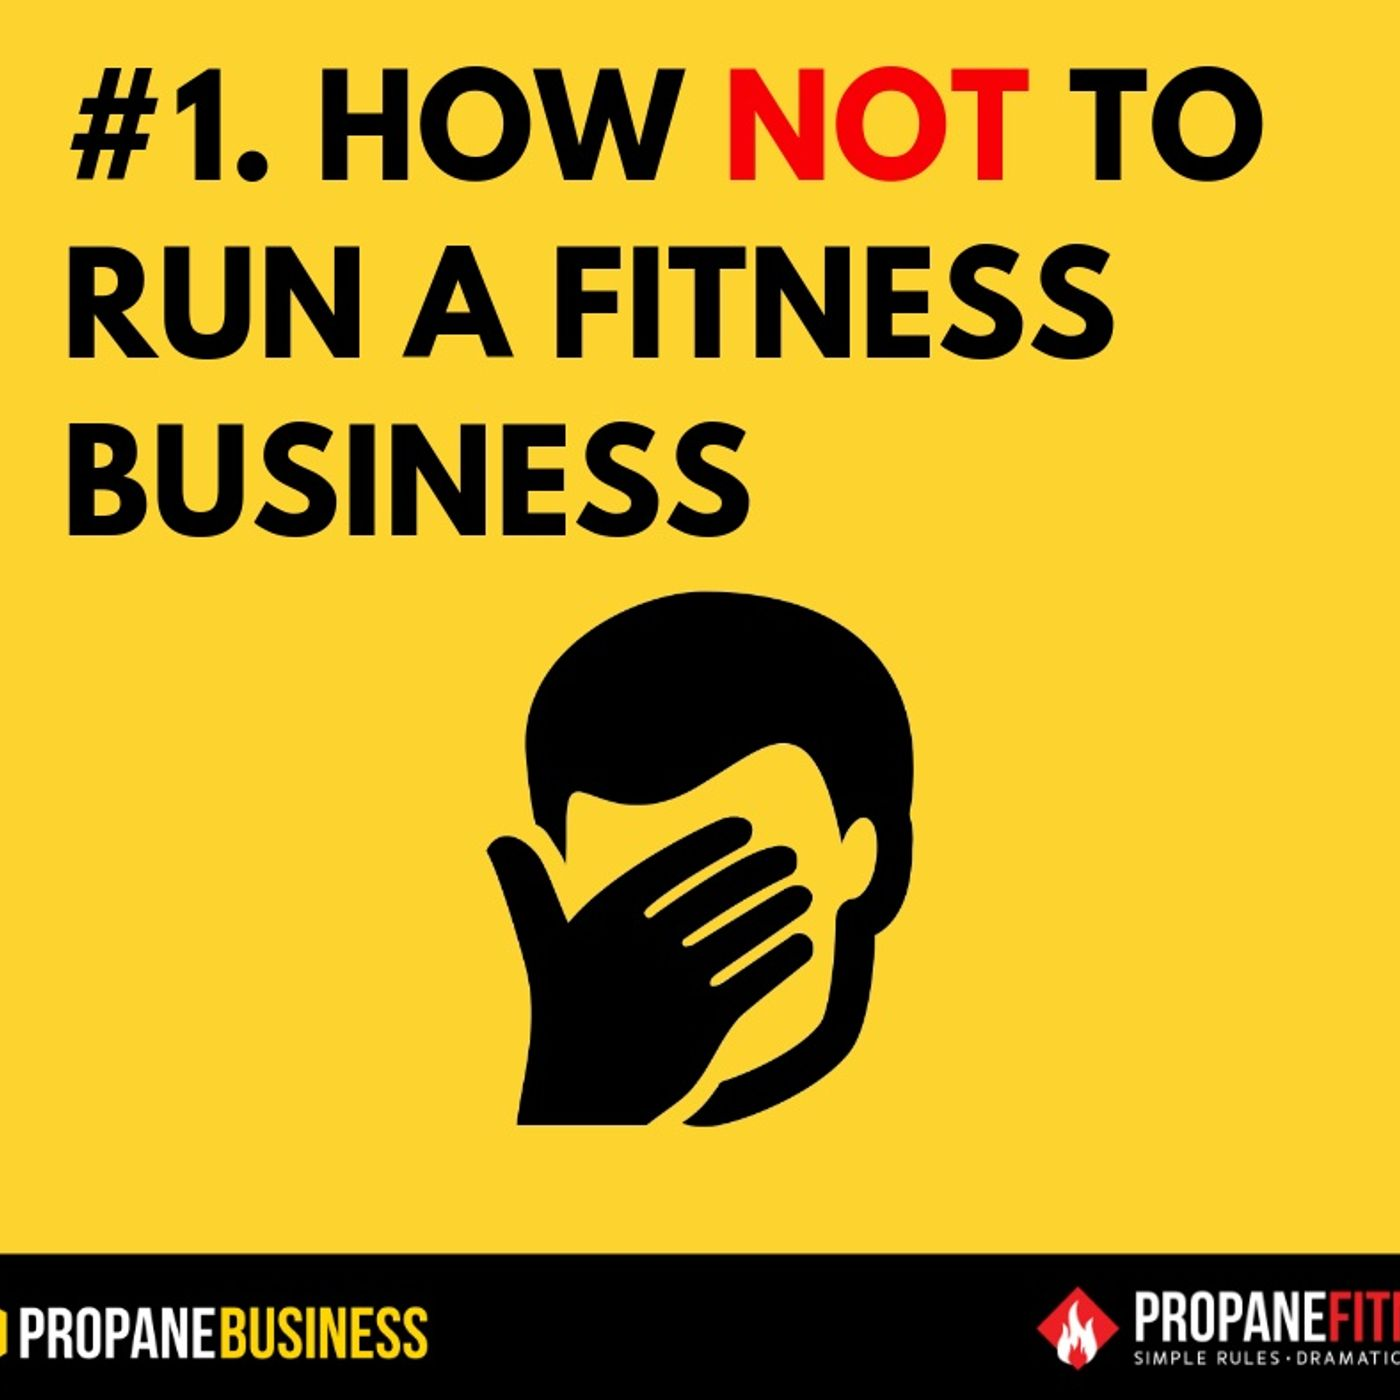 1. How NOT to start your fitness business